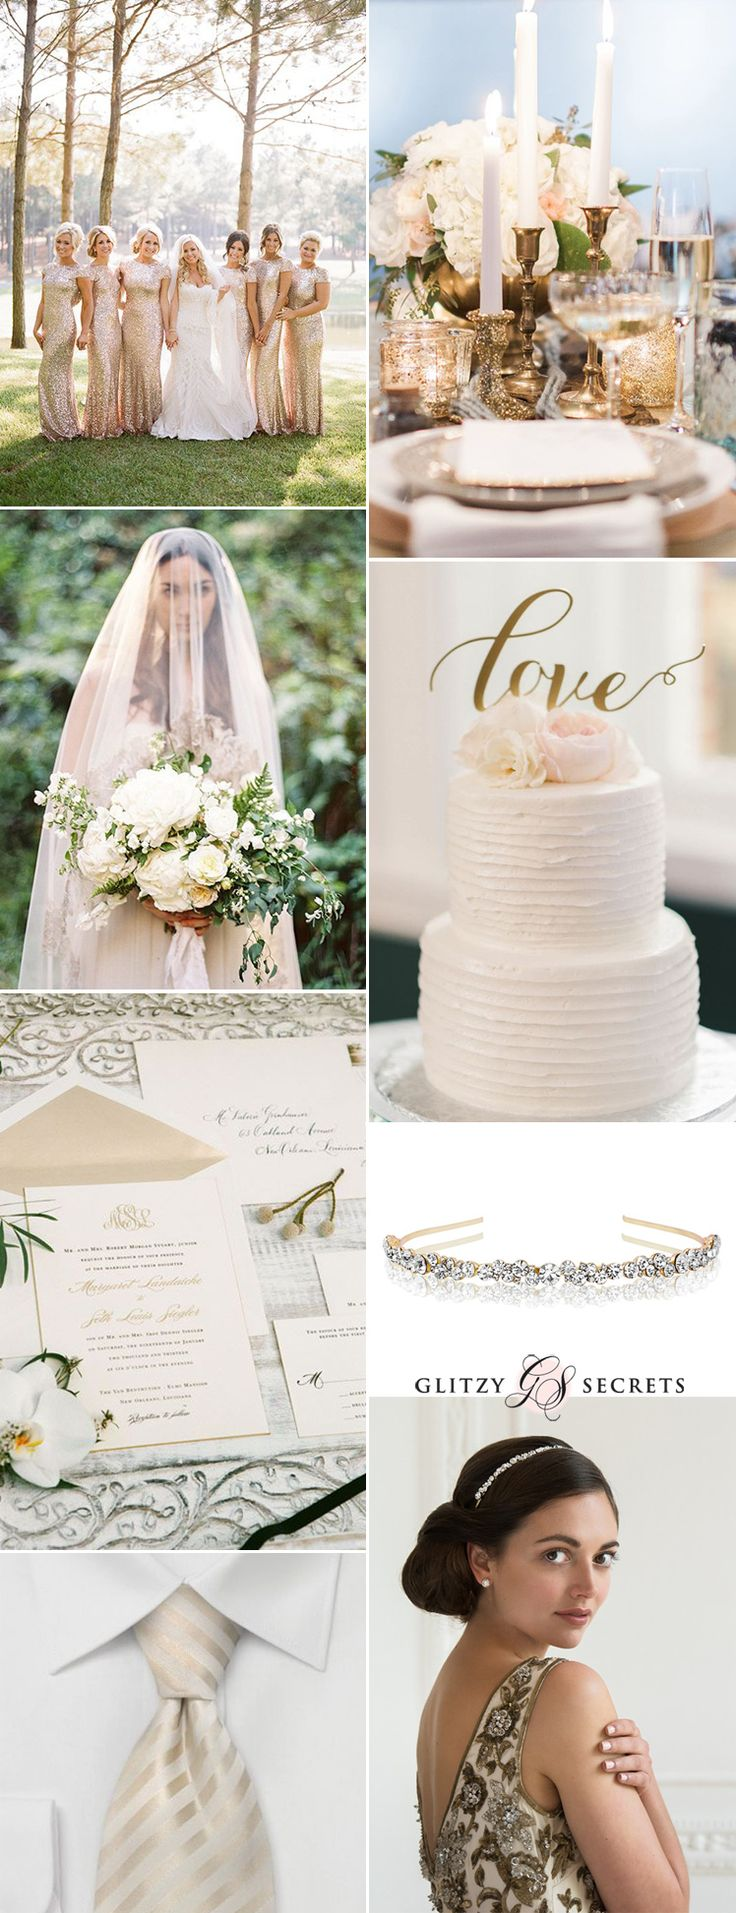 A touch of luxury with a cream and gold wedding theme. Regal and incedibly elegant, we are sure you will be swooning with this fabulous color combo